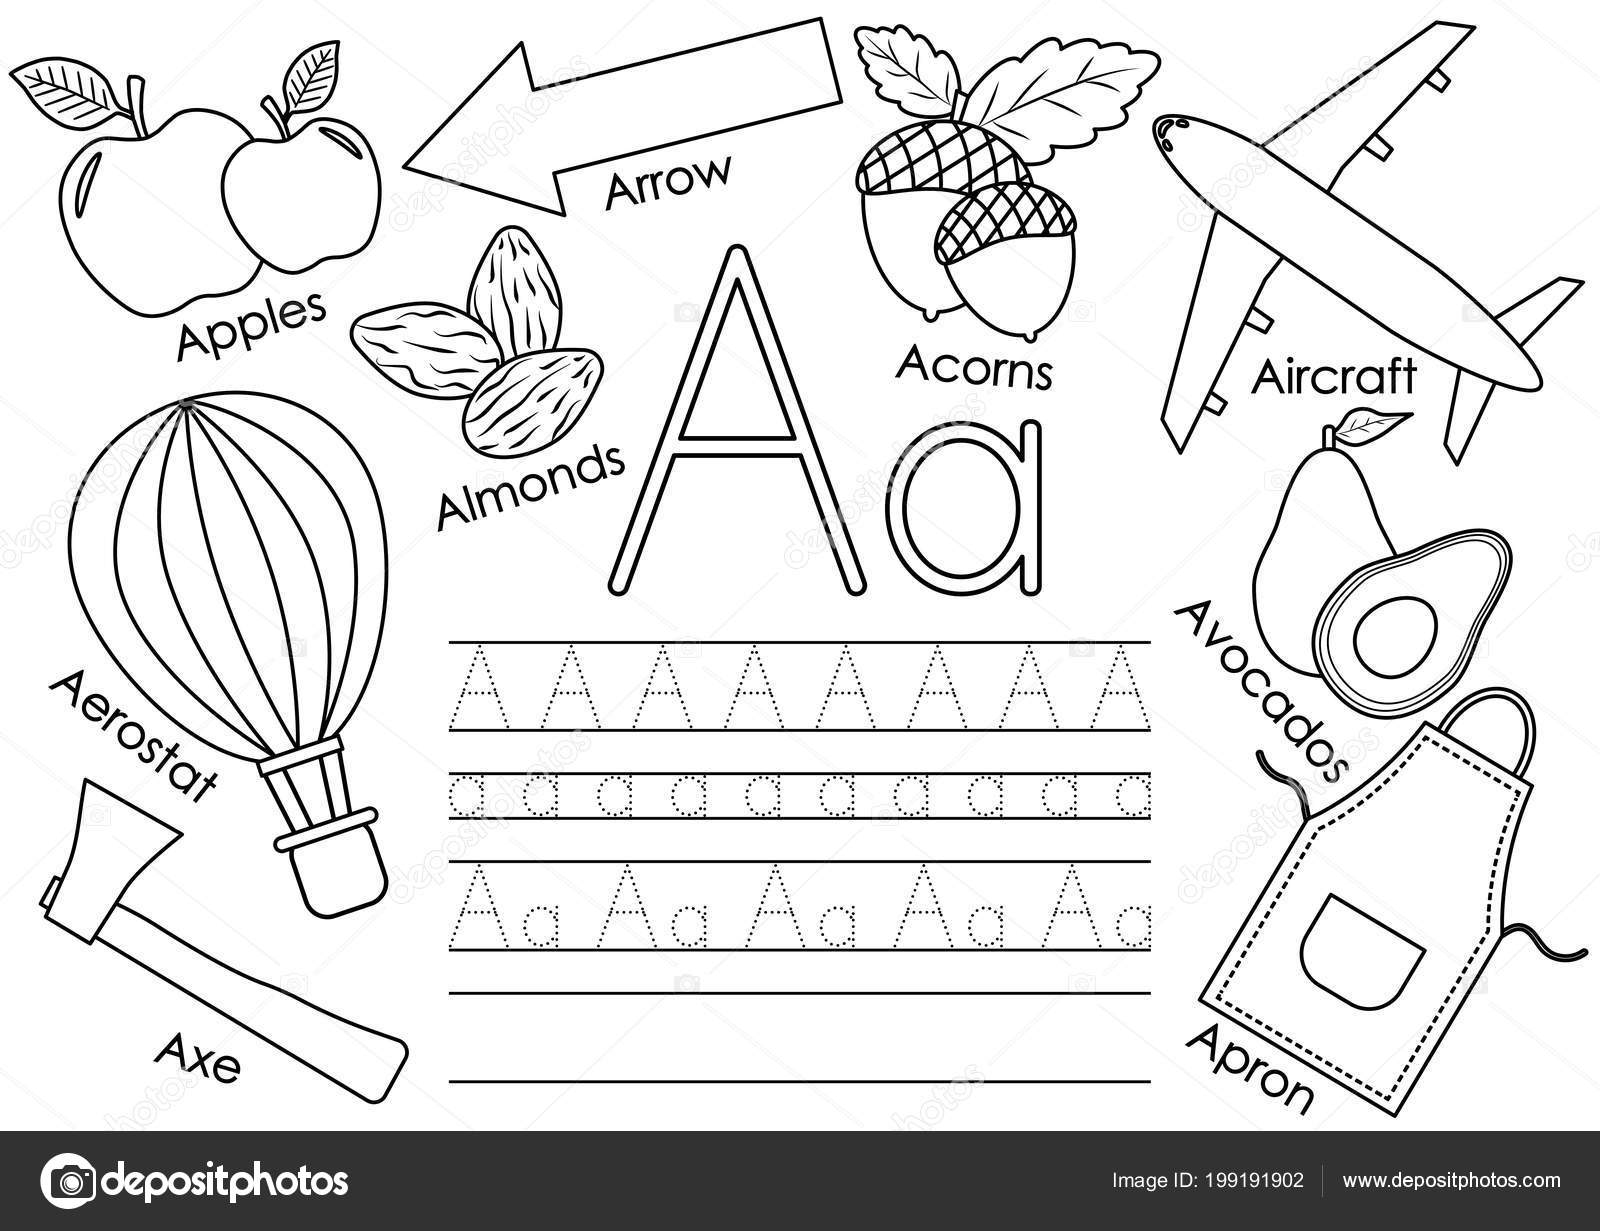 Letter Learning English Alphabet Pictures Writing Practice Children Coloring Book Vector Image By C Irusetka Yandex Ru Vector Stock 199191902